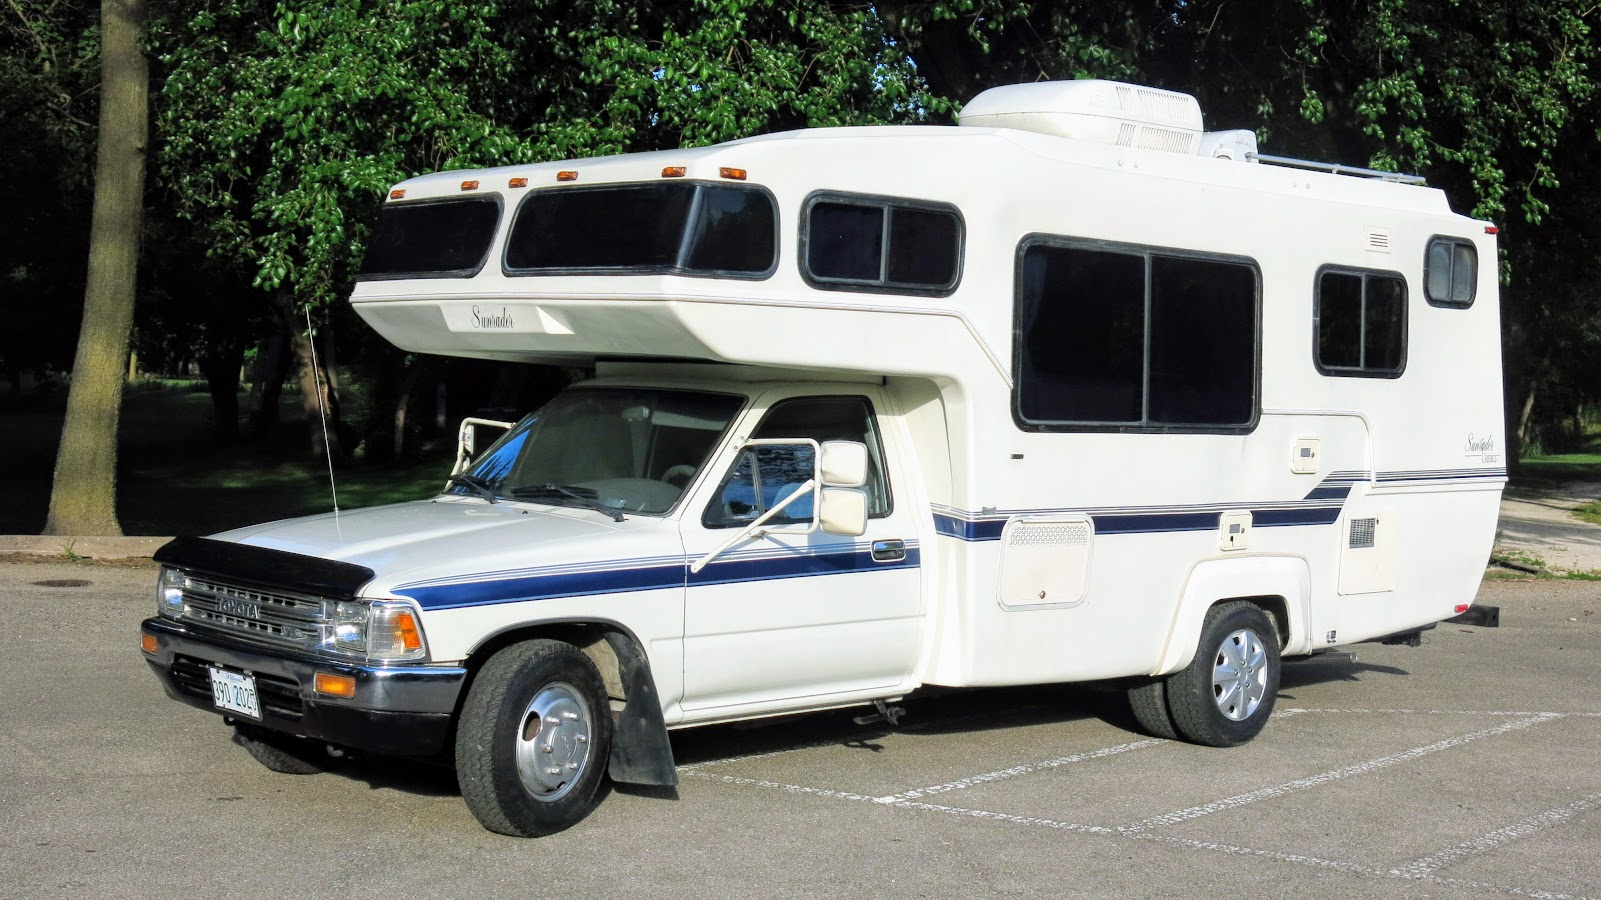 Used Motorhomes For Sale By Owner >> 1990 Toyota Sunrader 21 FT V6 Auto Motorhome For Sale in Morris, IL